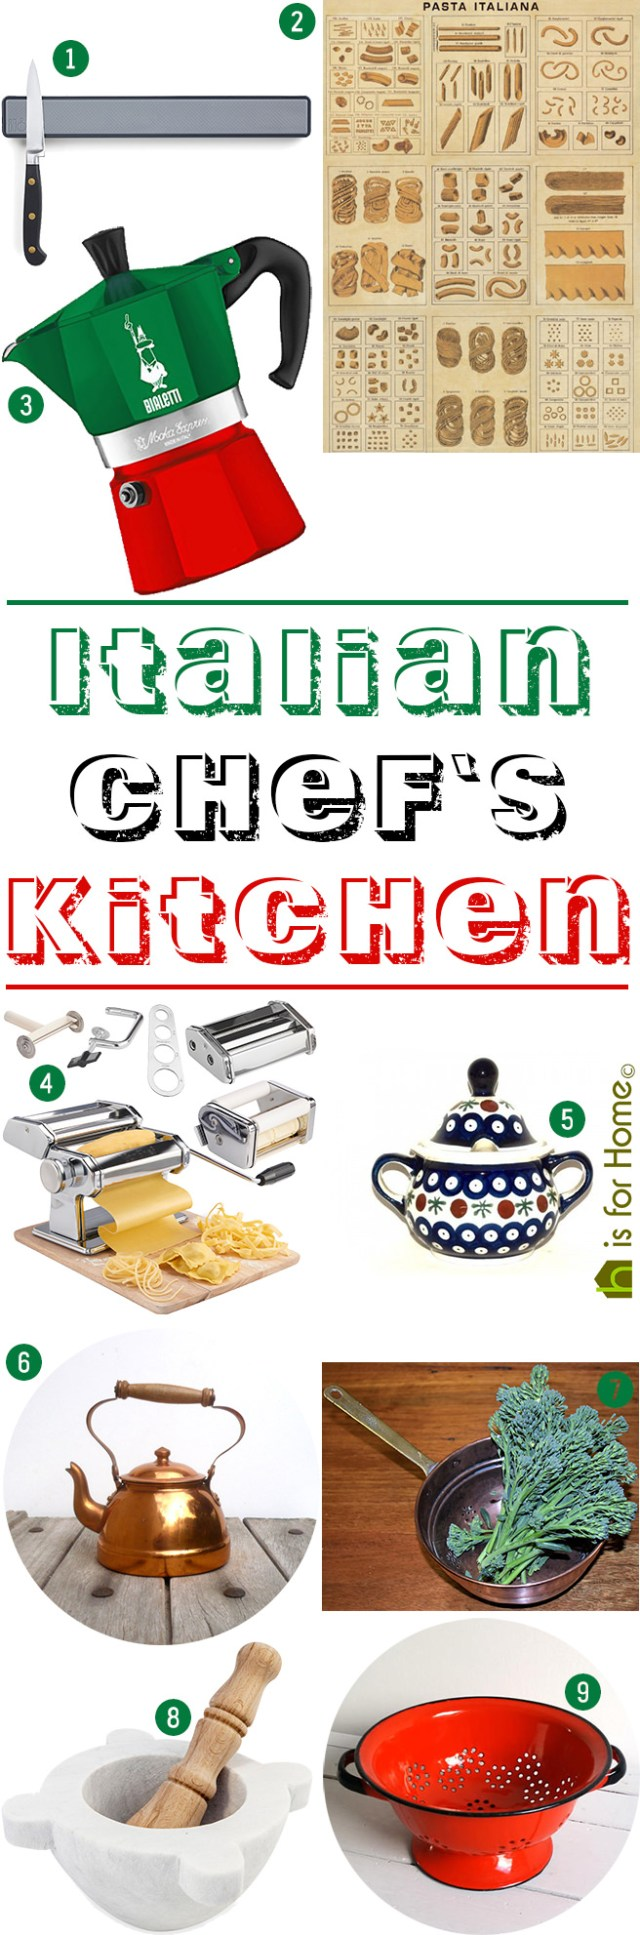 Get their look: Italian chef's kitchen | H is for Home